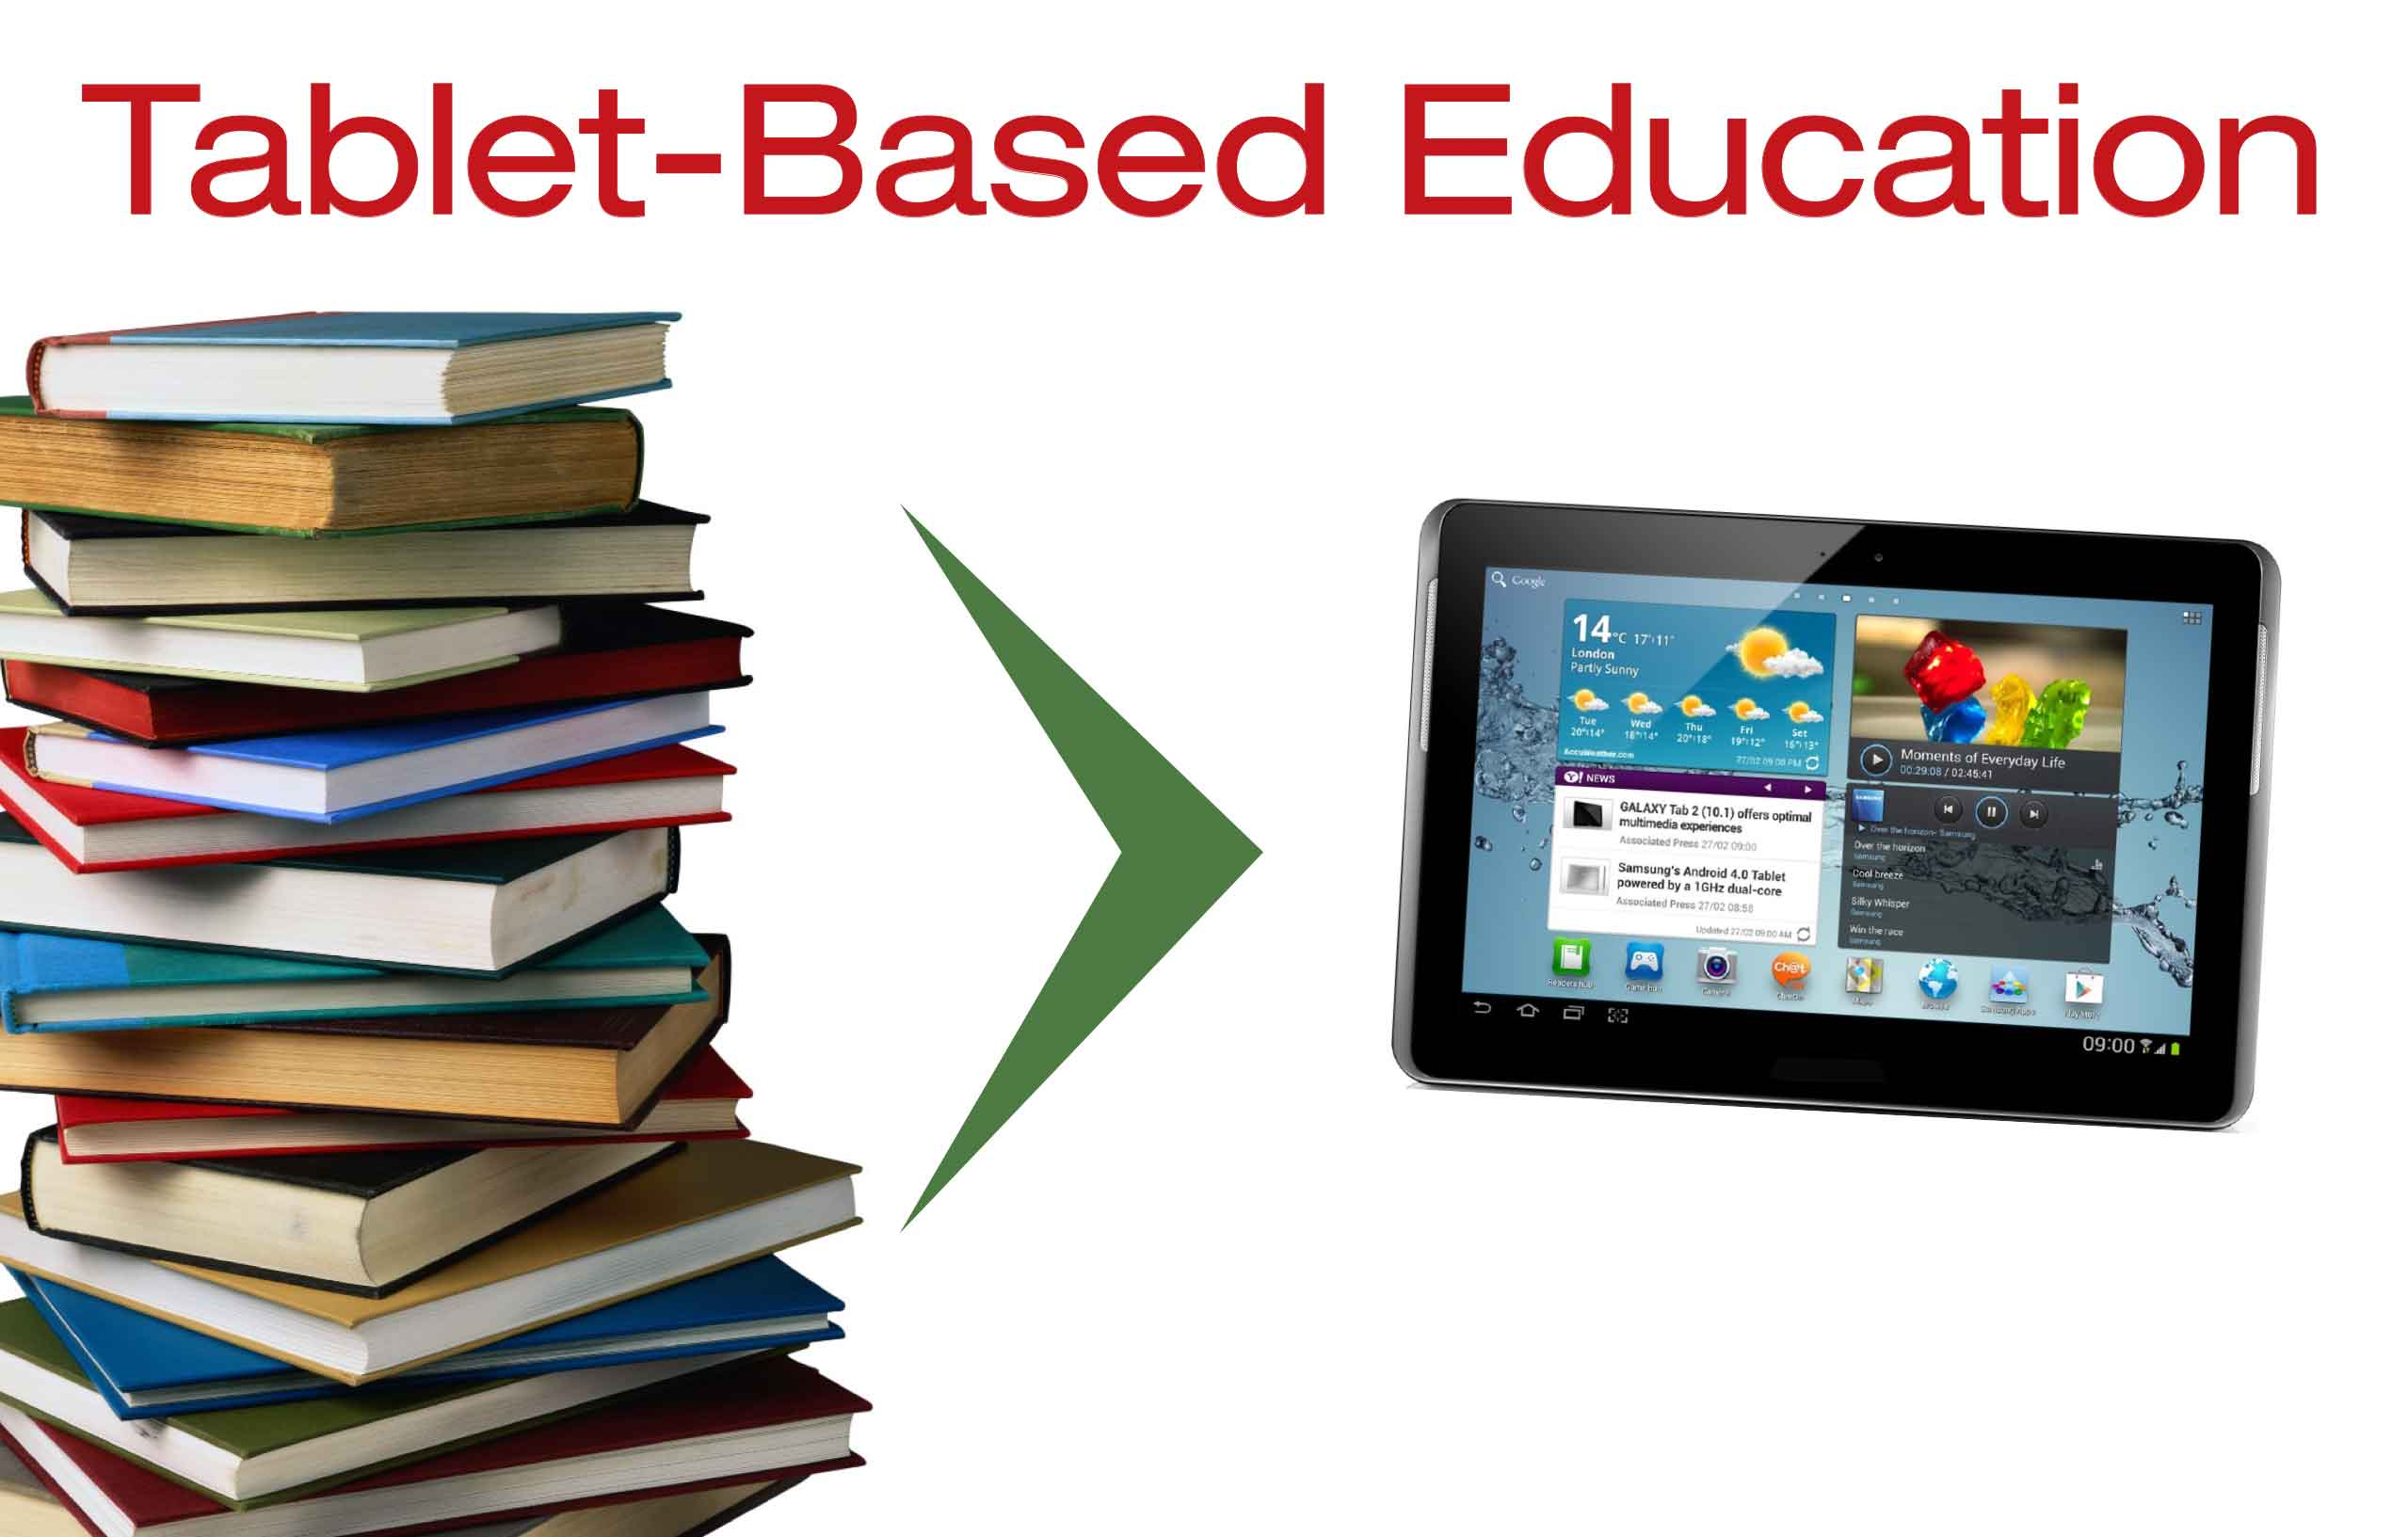 Tablets-in-education